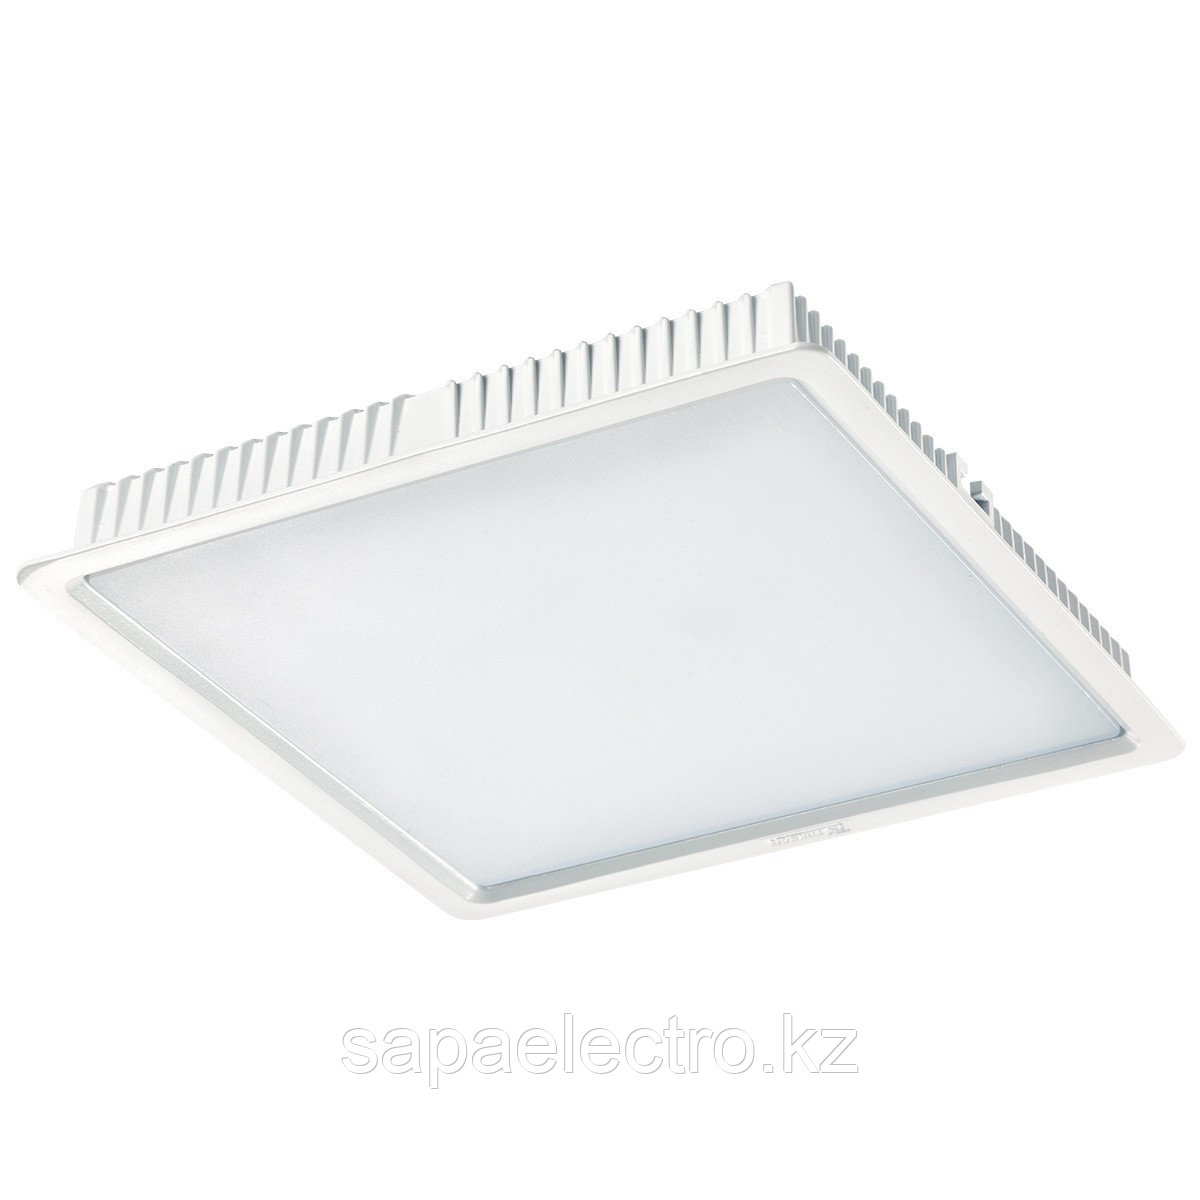 Свет-к LED SQ PANEL 30W 4500K WHITE (TEKSAN) 20шт